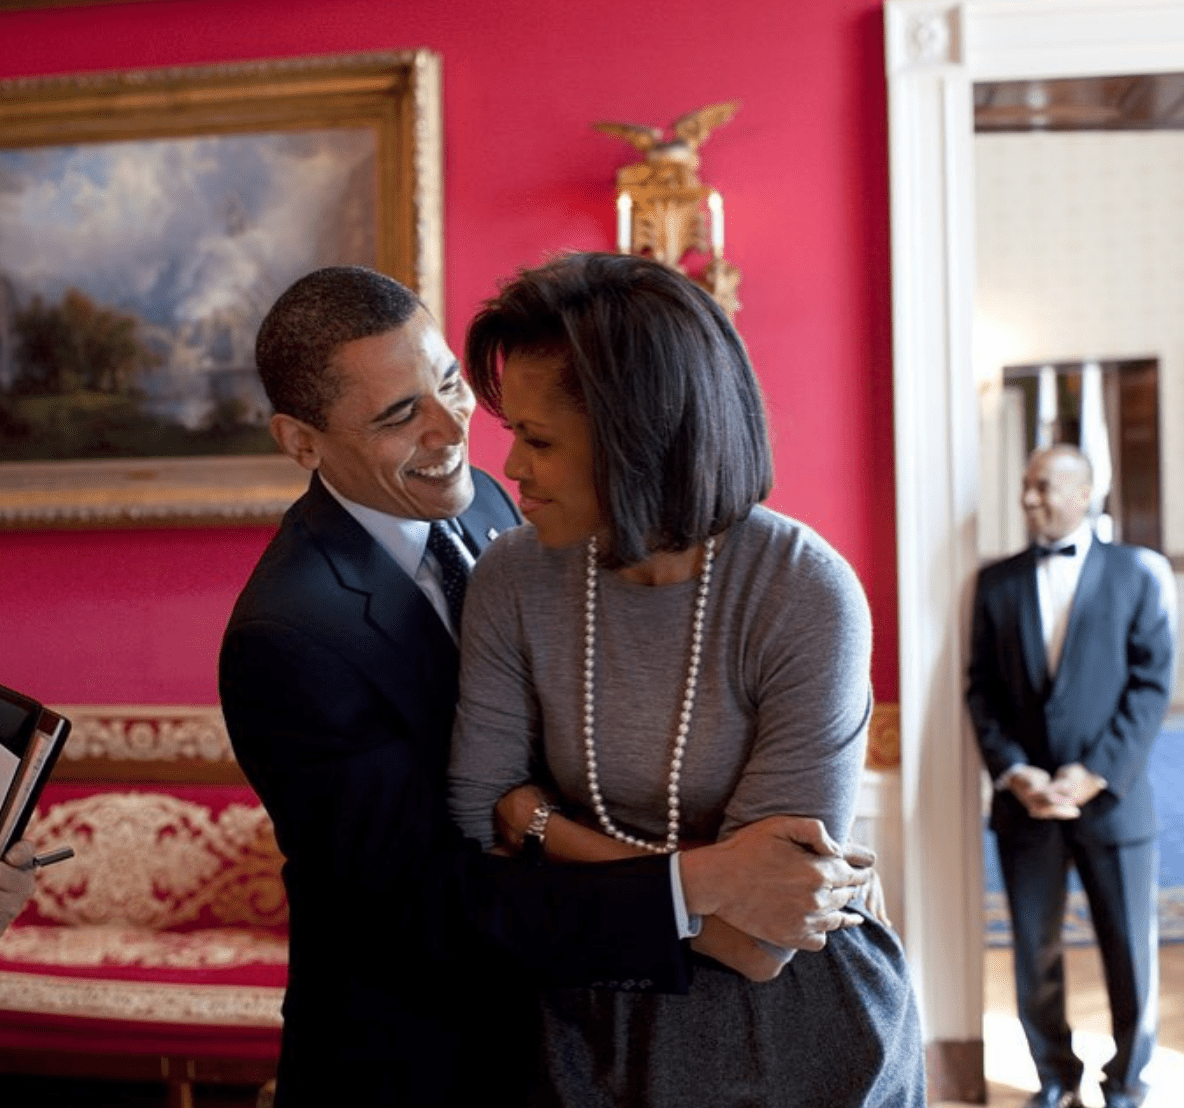 Michelle Obama Shares 'Best Friend' Barack's Sweet Birthday Gift -- See the Pic!